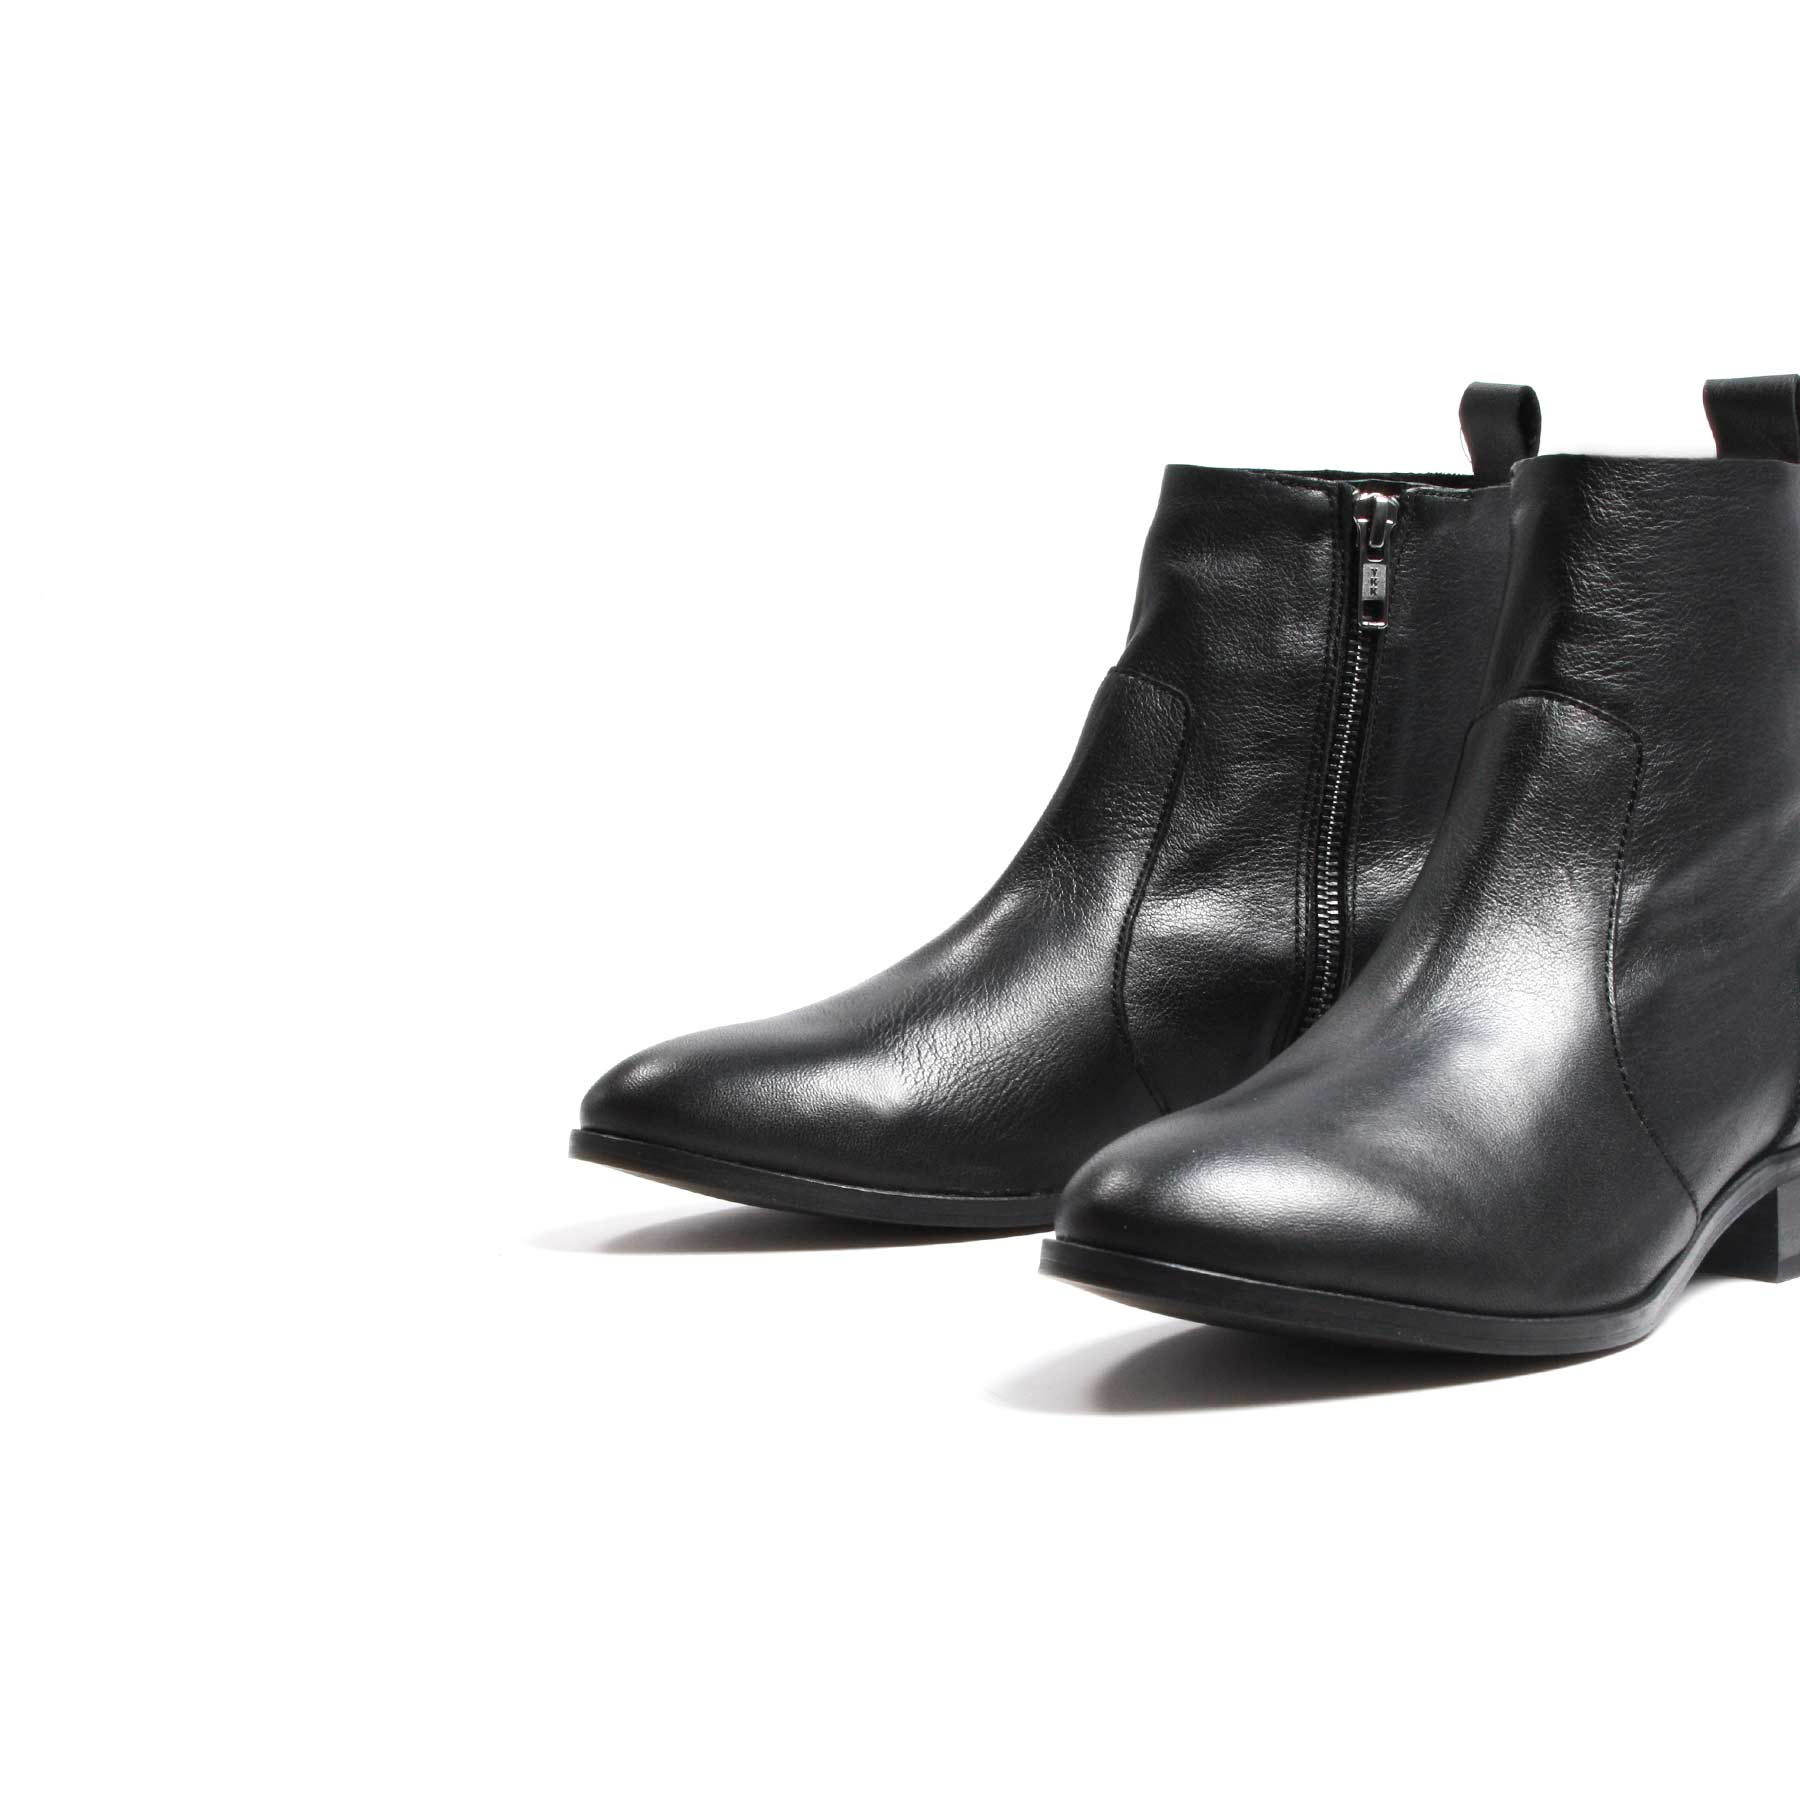 Mercer Black Leather Booties